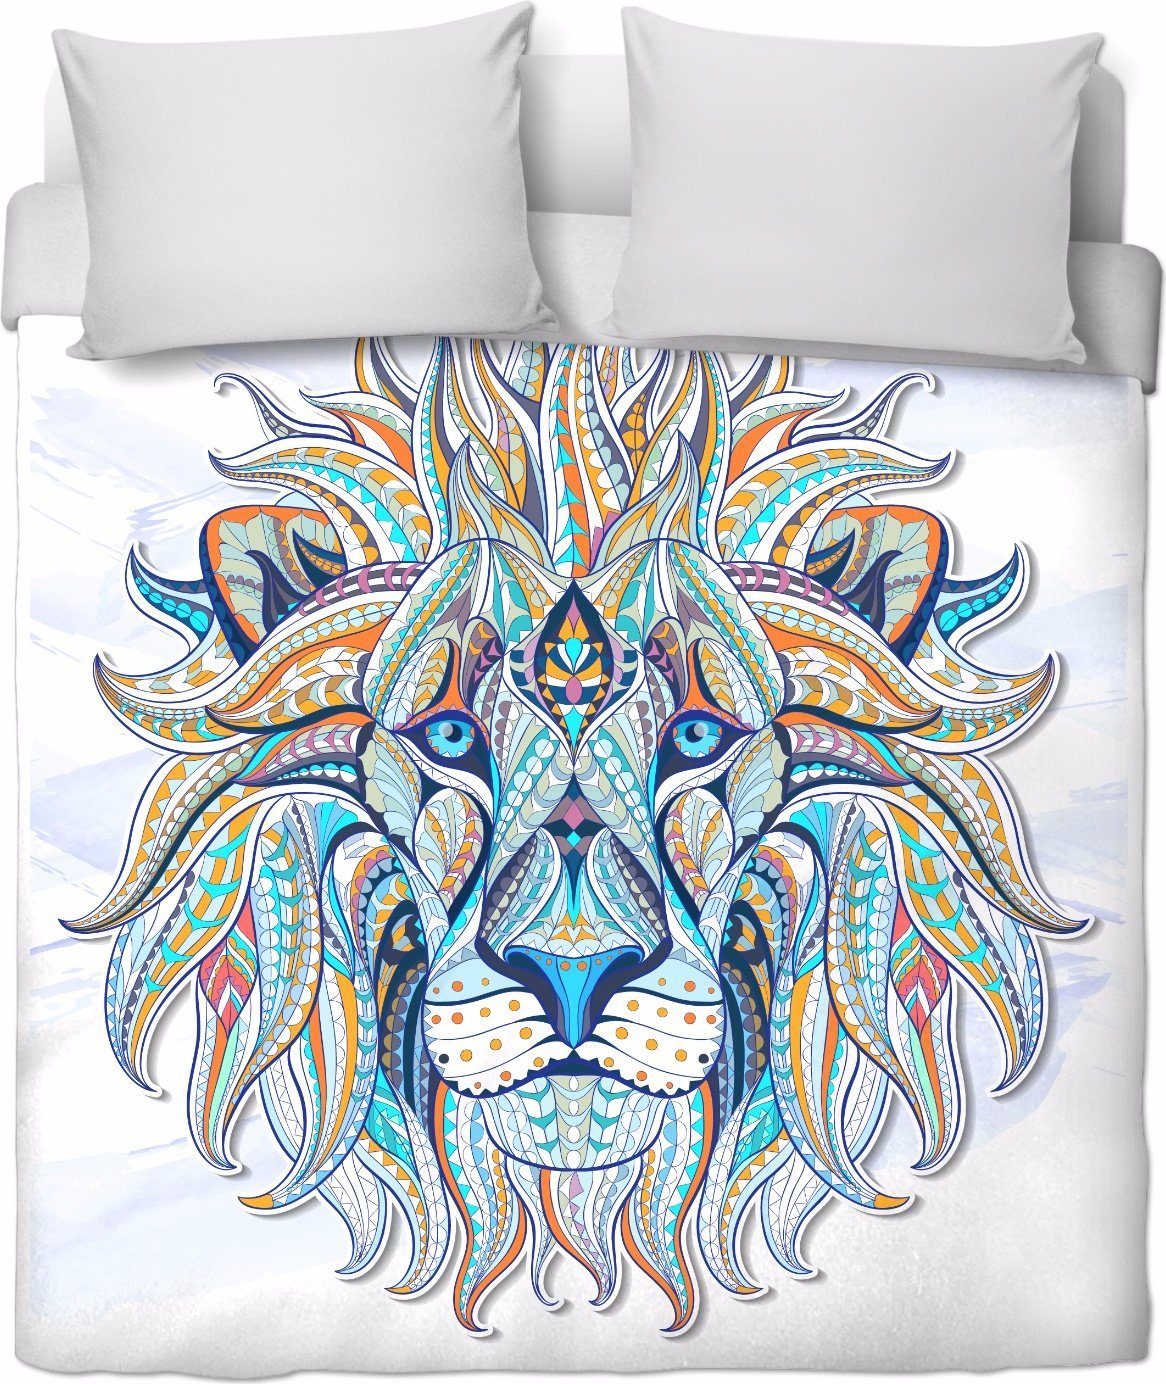 Buy LEO 100% COTTON BEDDING SETS - Familyloves hoodies t-shirt jacket mug cheapest free shipping 50% off